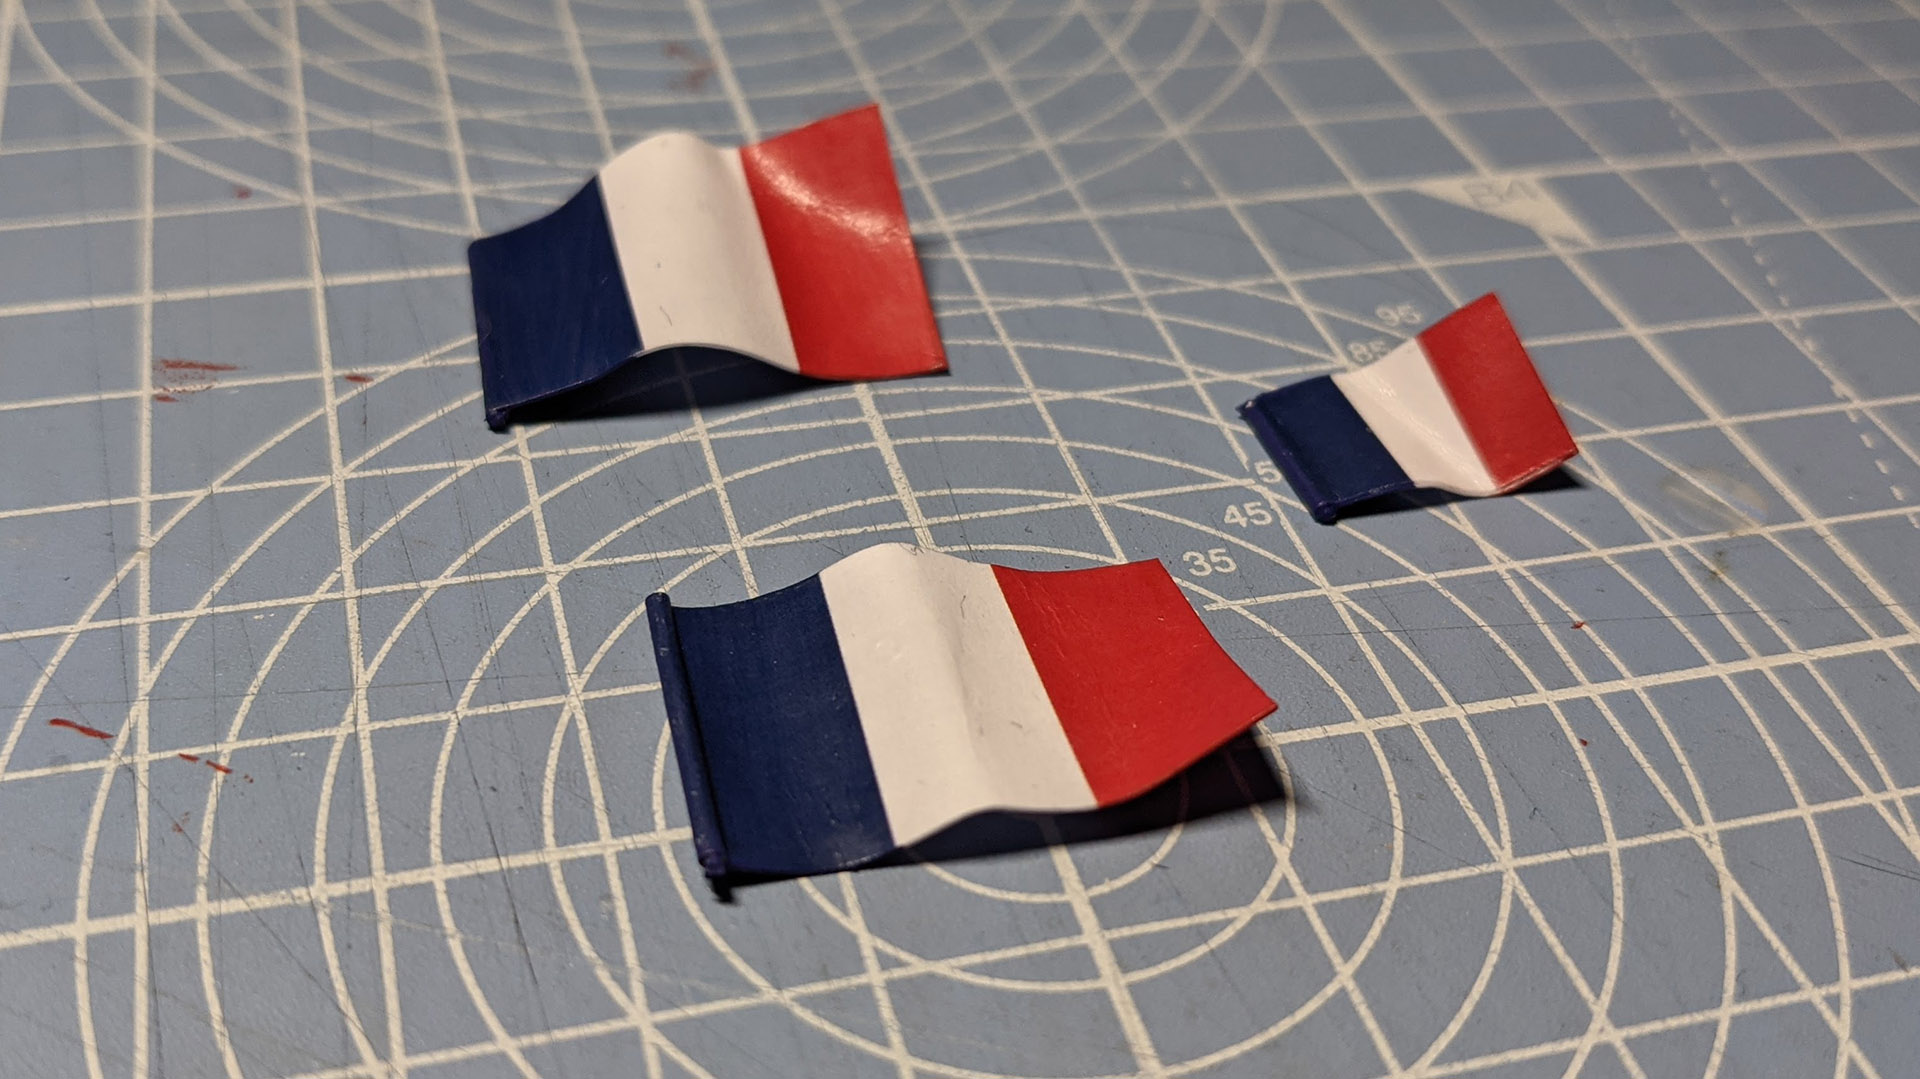 Flags after being curled. This picture also shows off the painted edges, which really help give your flags a professional look.